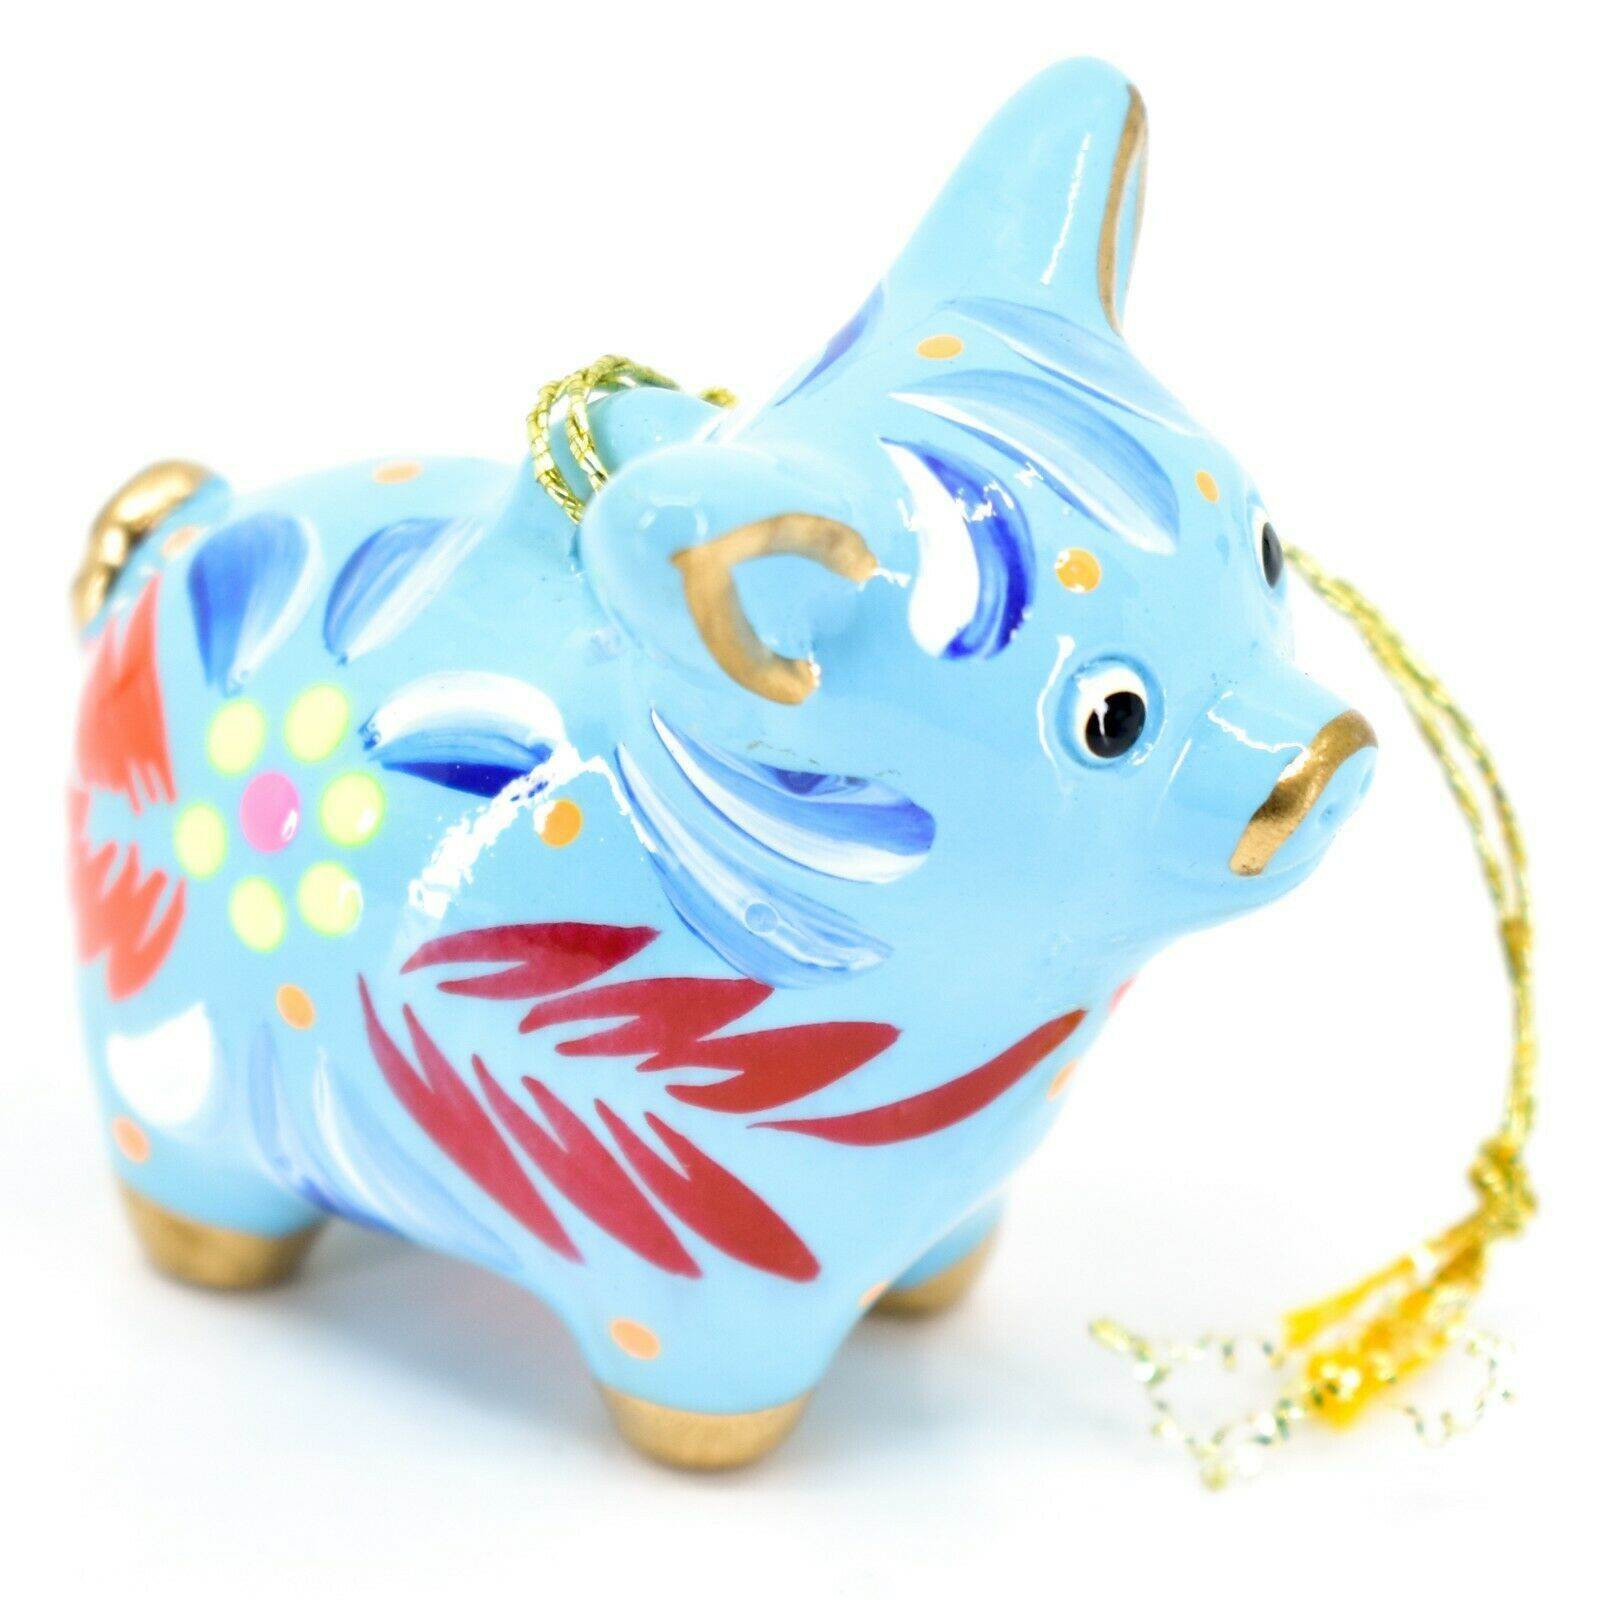 Handcrafted Painted Ceramic Blue Pig Confetti Ornament Made in Peru